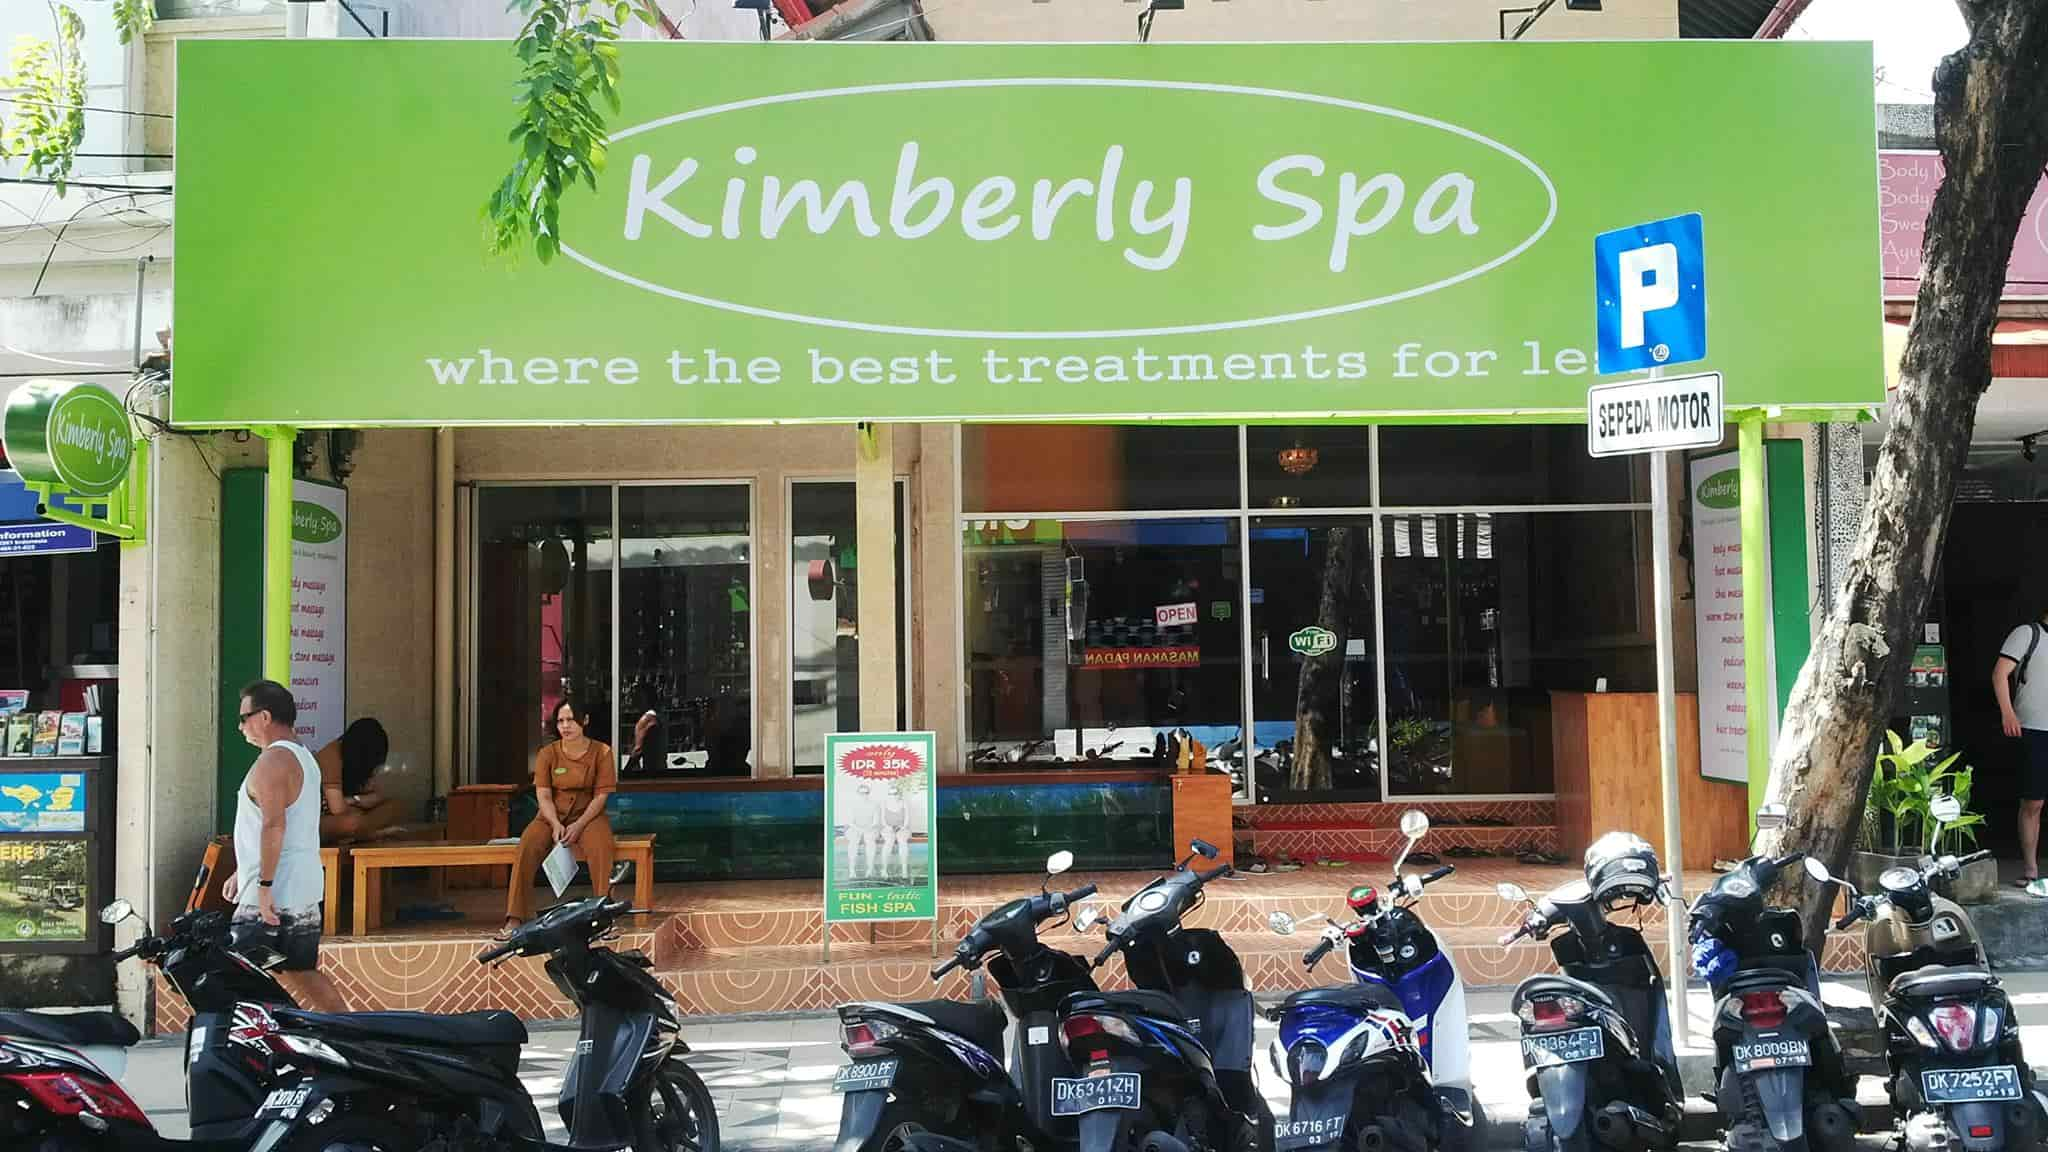 Typical massage parlor in Bali that can be spotted in commercial areas. Image credit:  Kimberly Spa Bali Facebook page